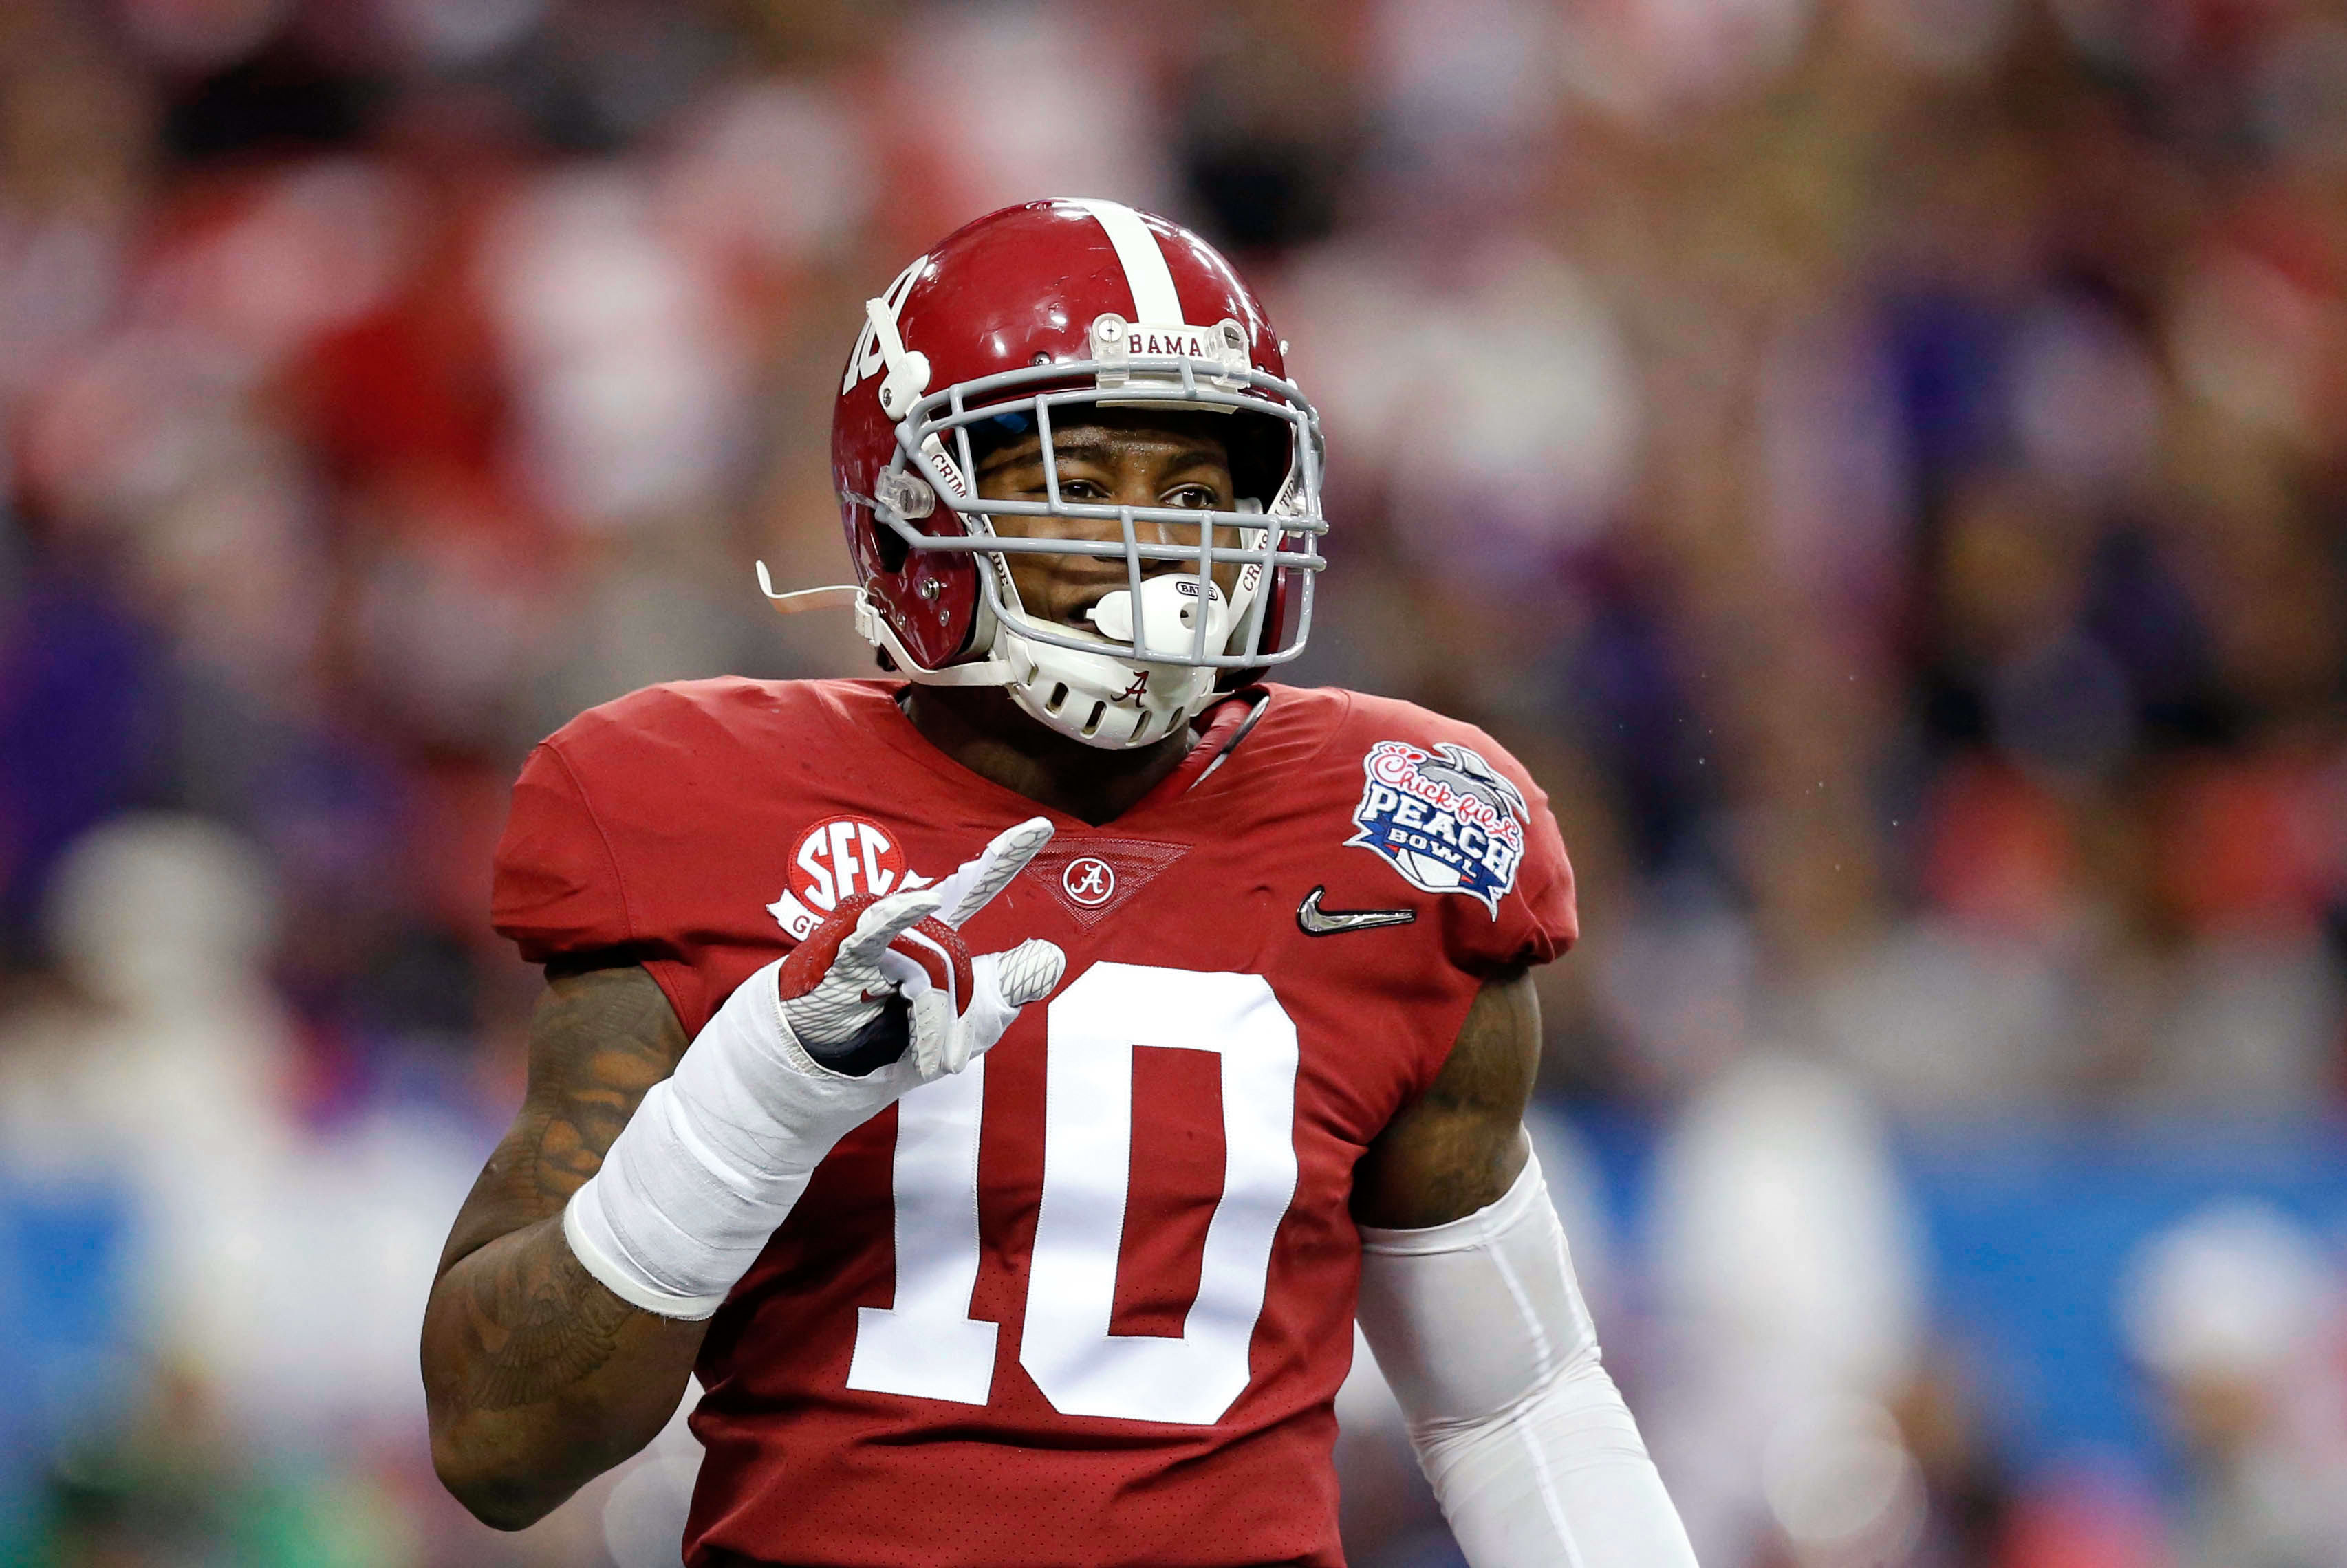 NFL Draft 2017: Top 5 Draft Prospects From Alabama Football